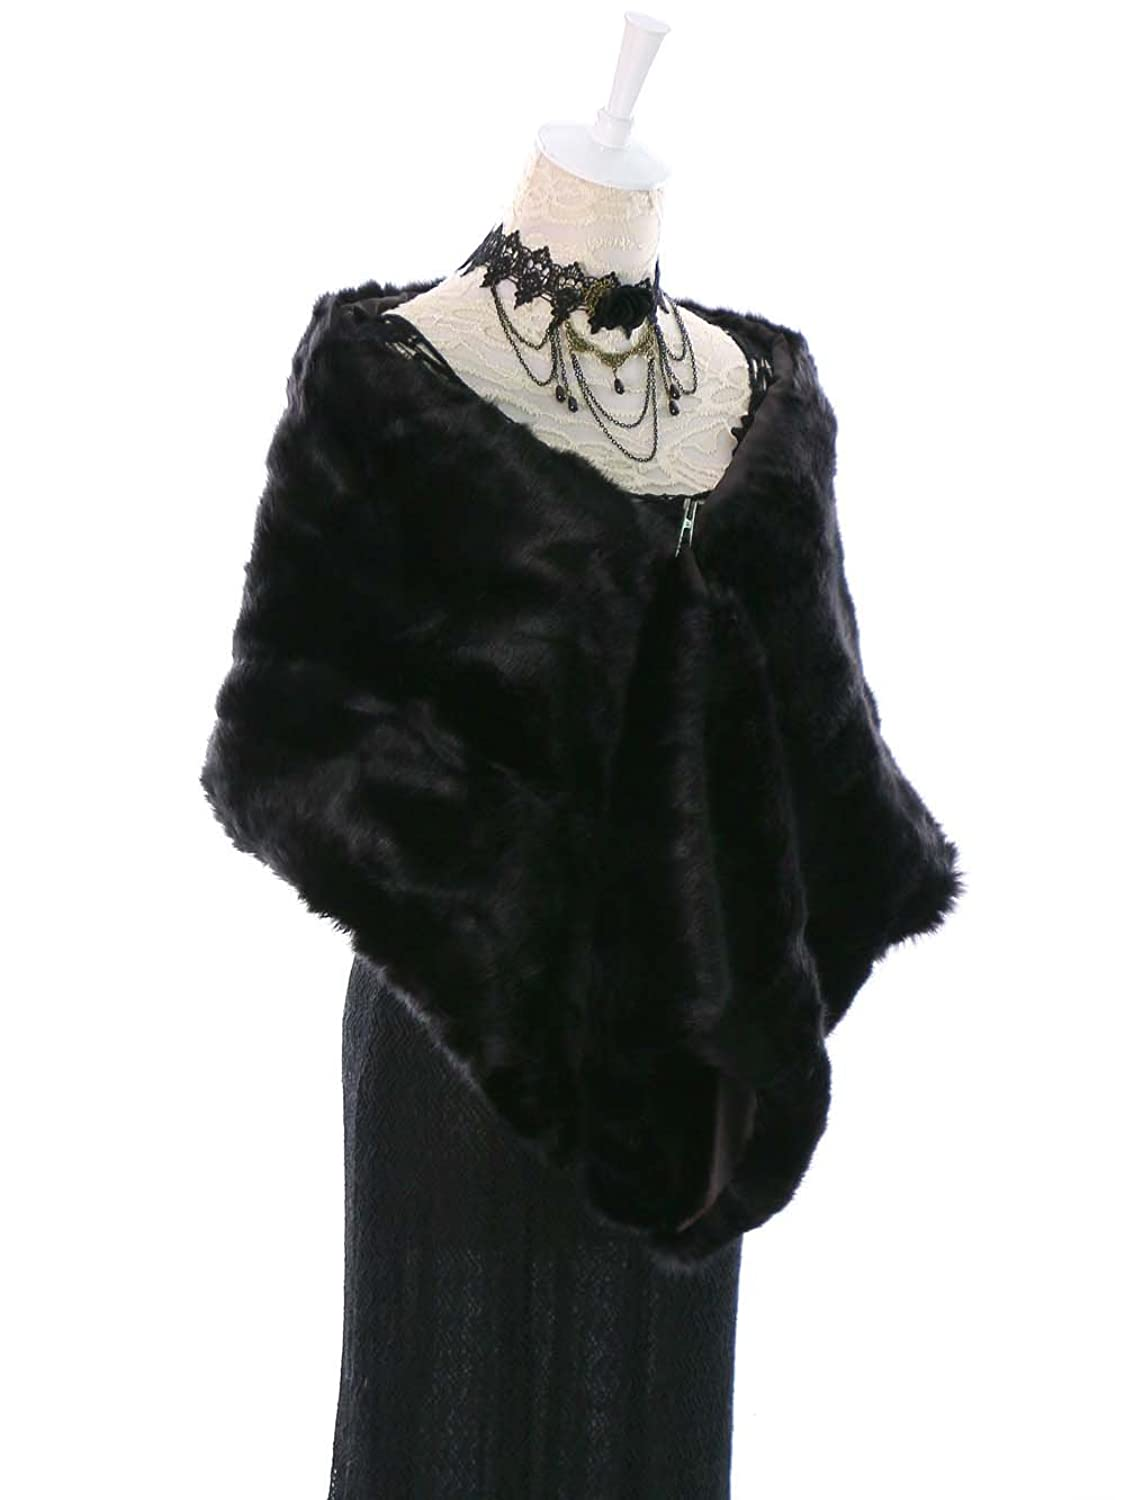 Vintage Scarves- New in the 1920s to 1960s Styles Shawls and Wraps Bridal Fur Stoles and Scarves for Women $24.66 AT vintagedancer.com